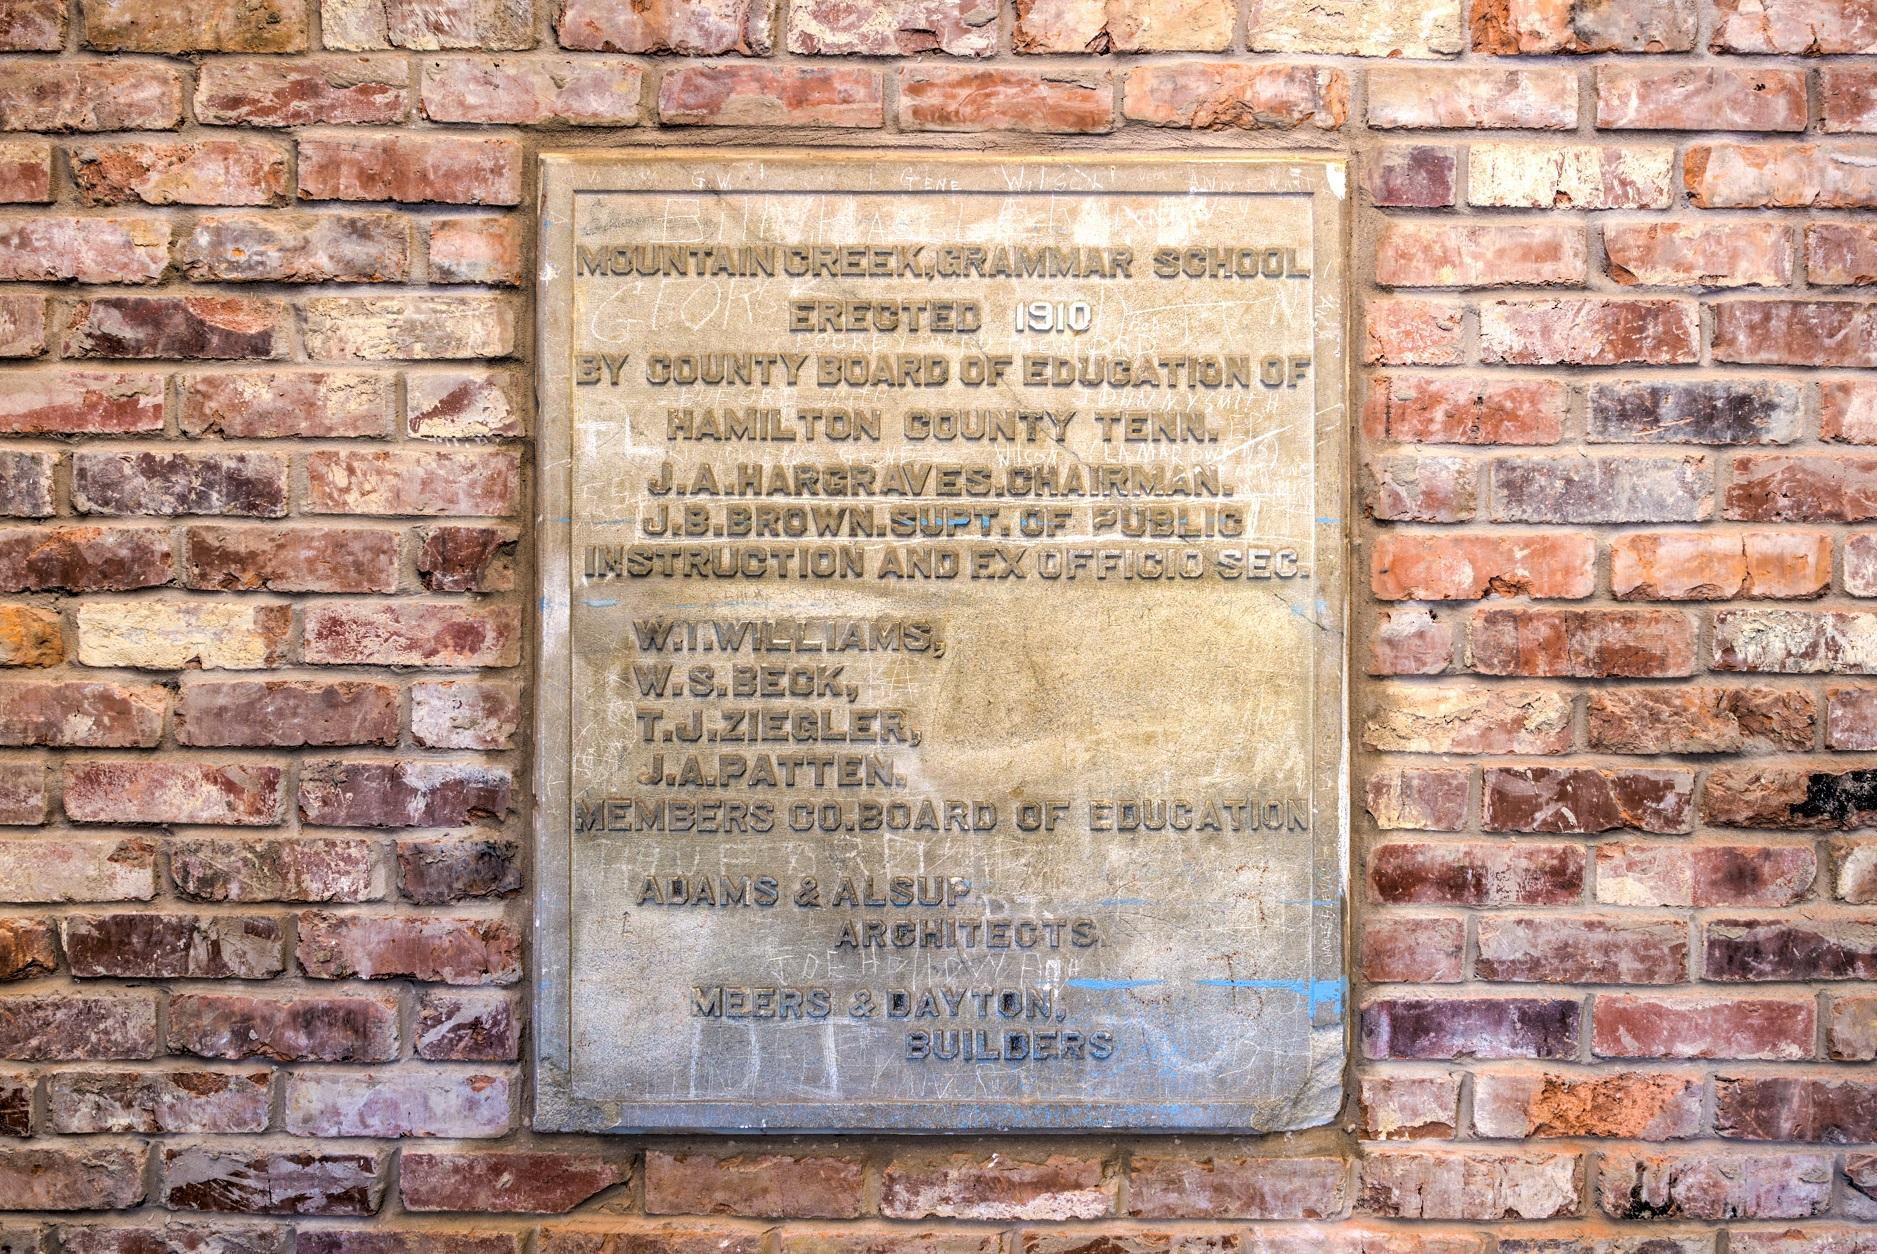 Plaque From Old Mountain Creek Grammer School